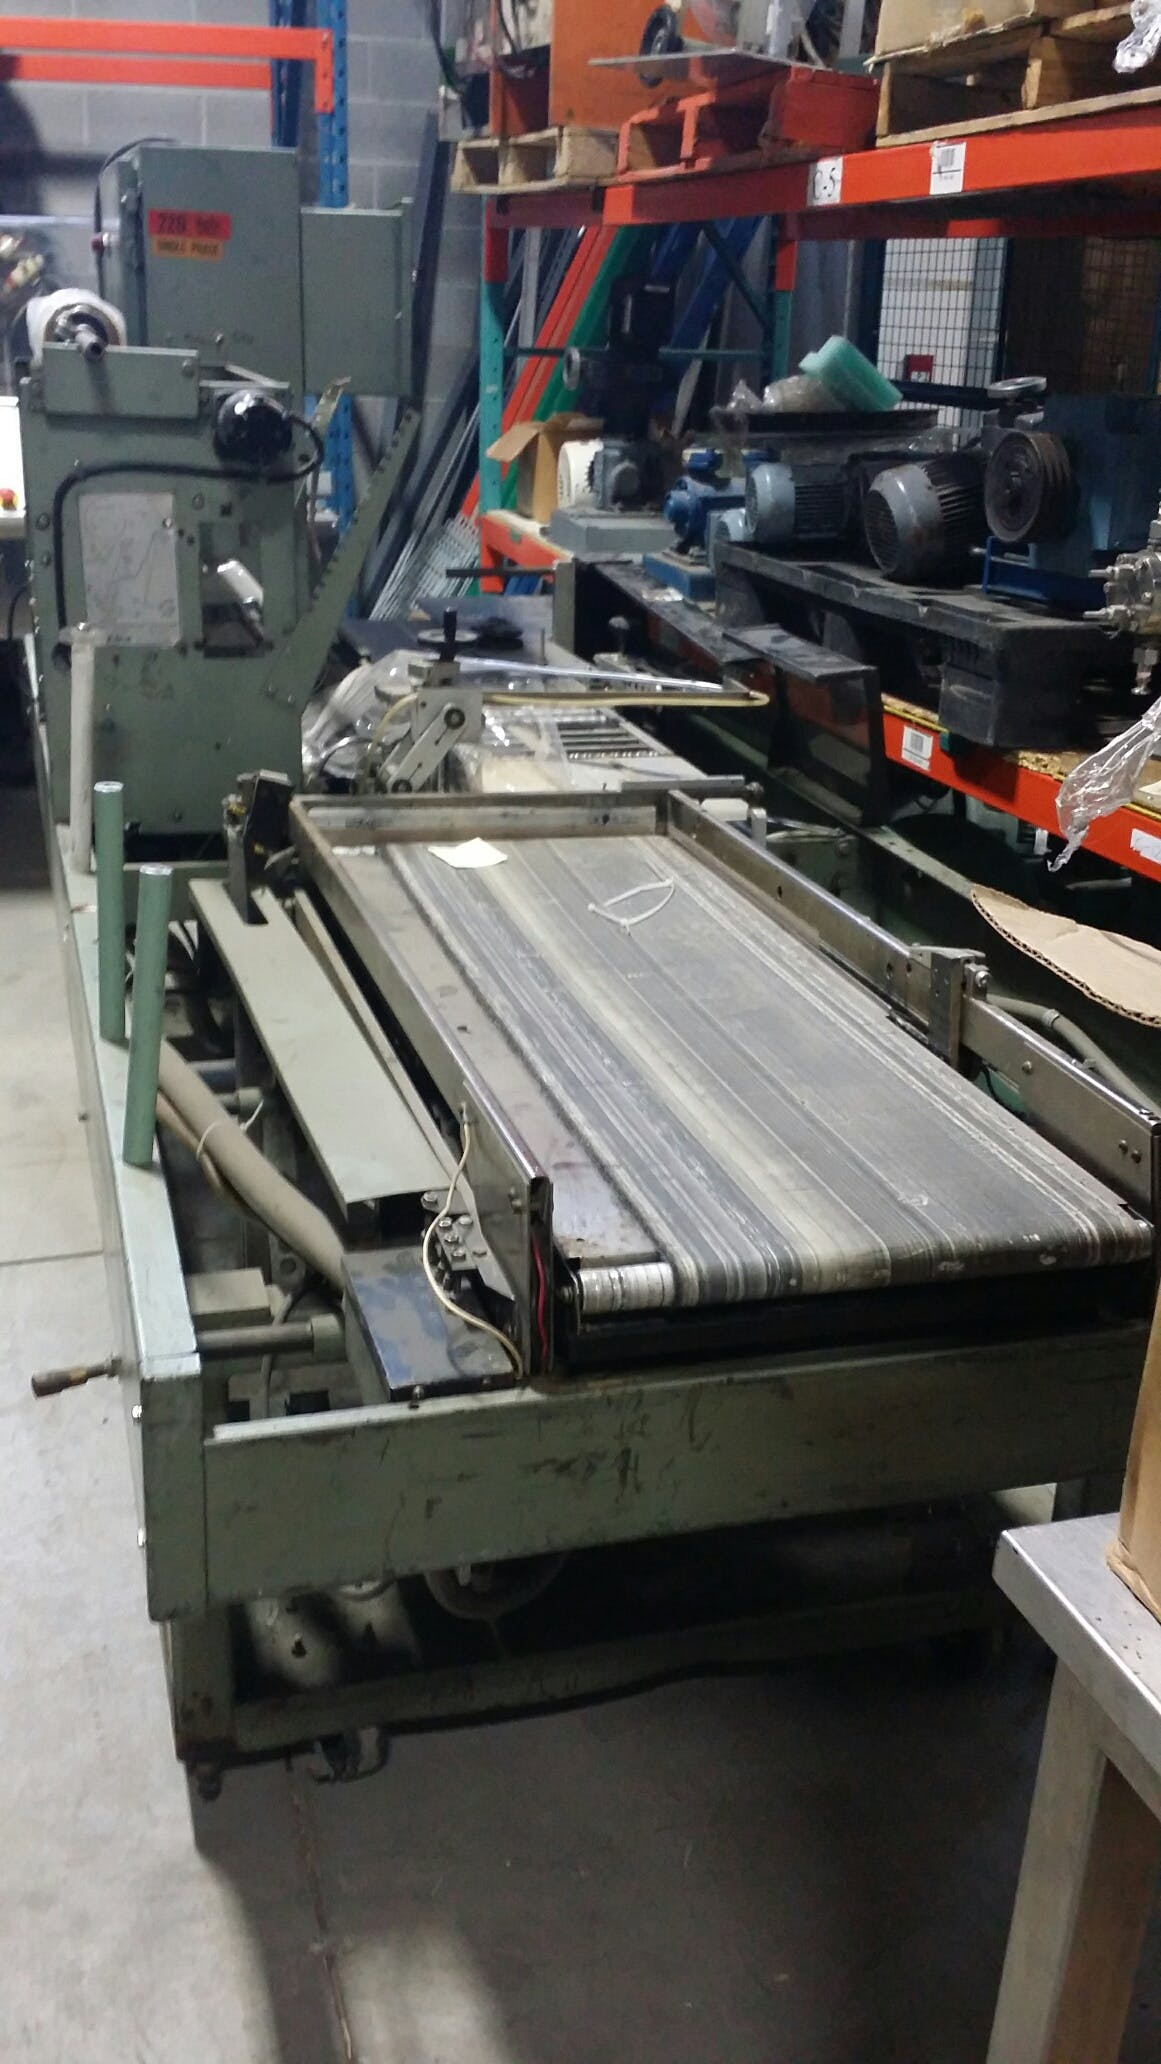 WELDOTRON 5911 Automatic L Bar Shrink Shrink wrapper sold by Aevos Equipment